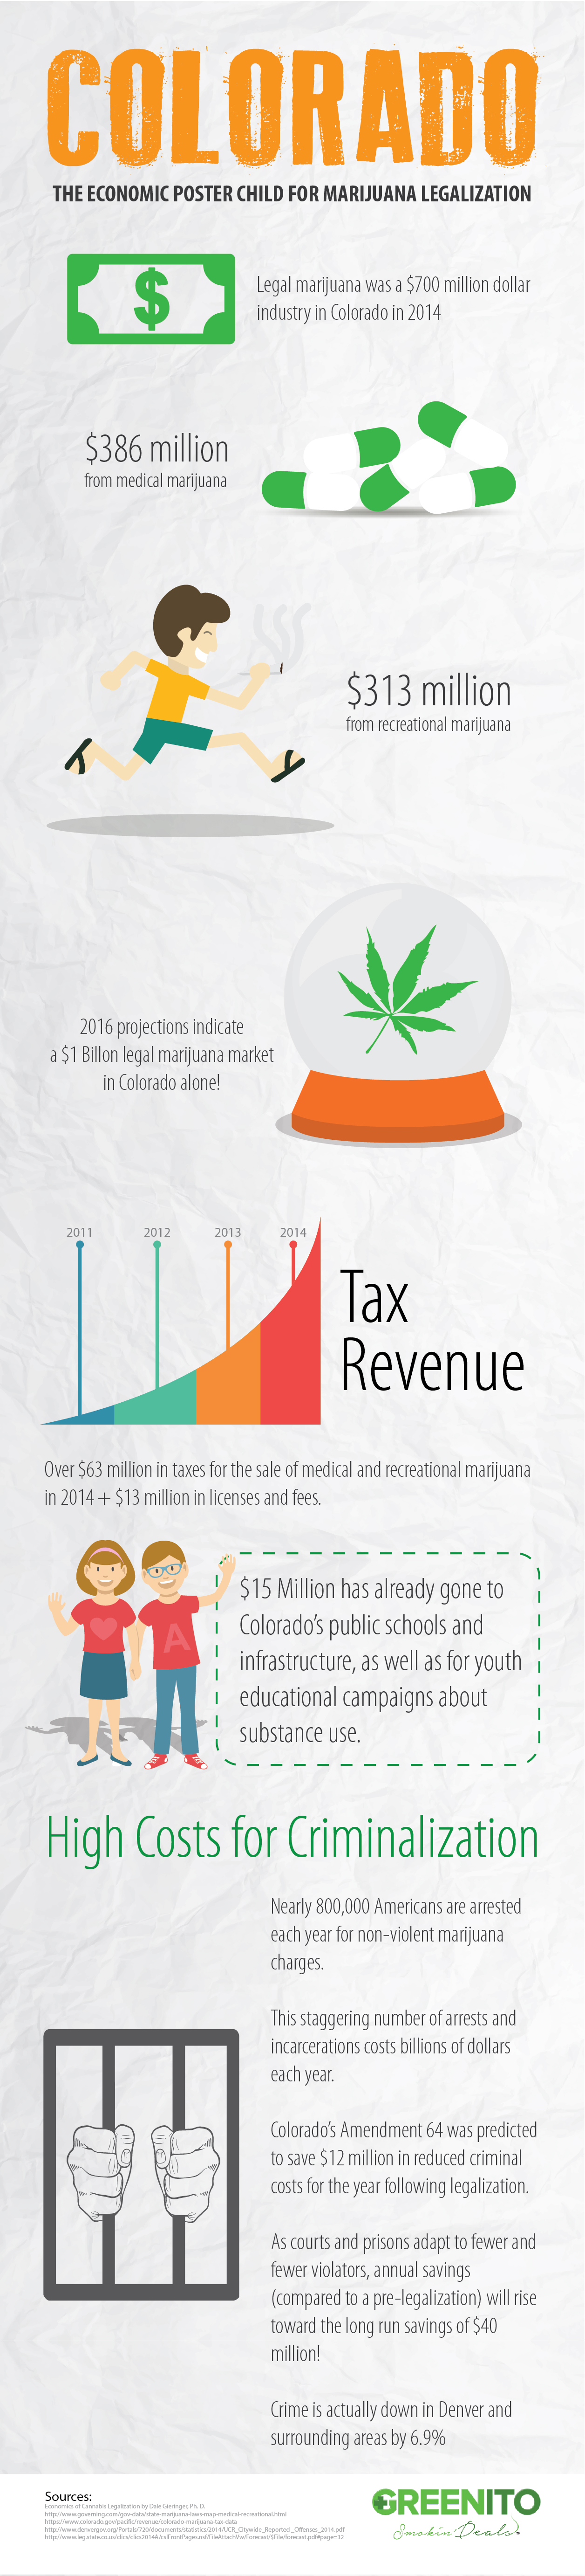 Greenito Infographic on Colorado Legal Marijuana